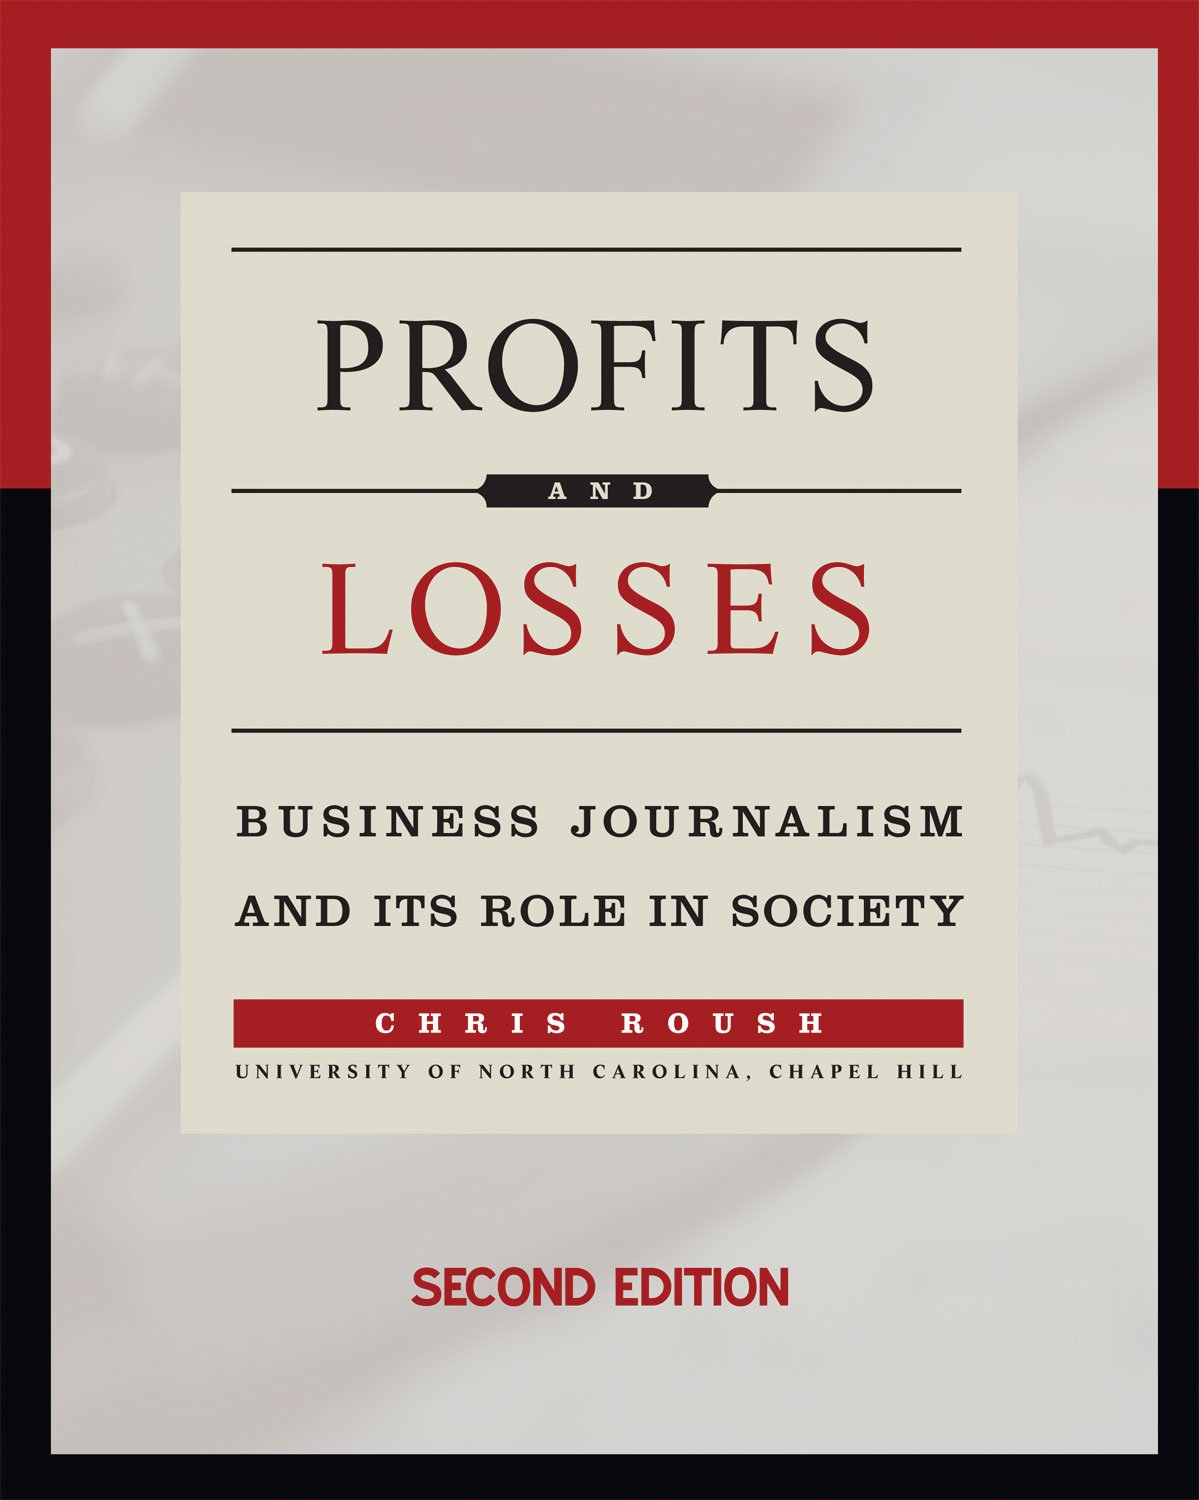 Profits and Losses: Business Journalism and Its Role in Society by Marion Street Press, LLC